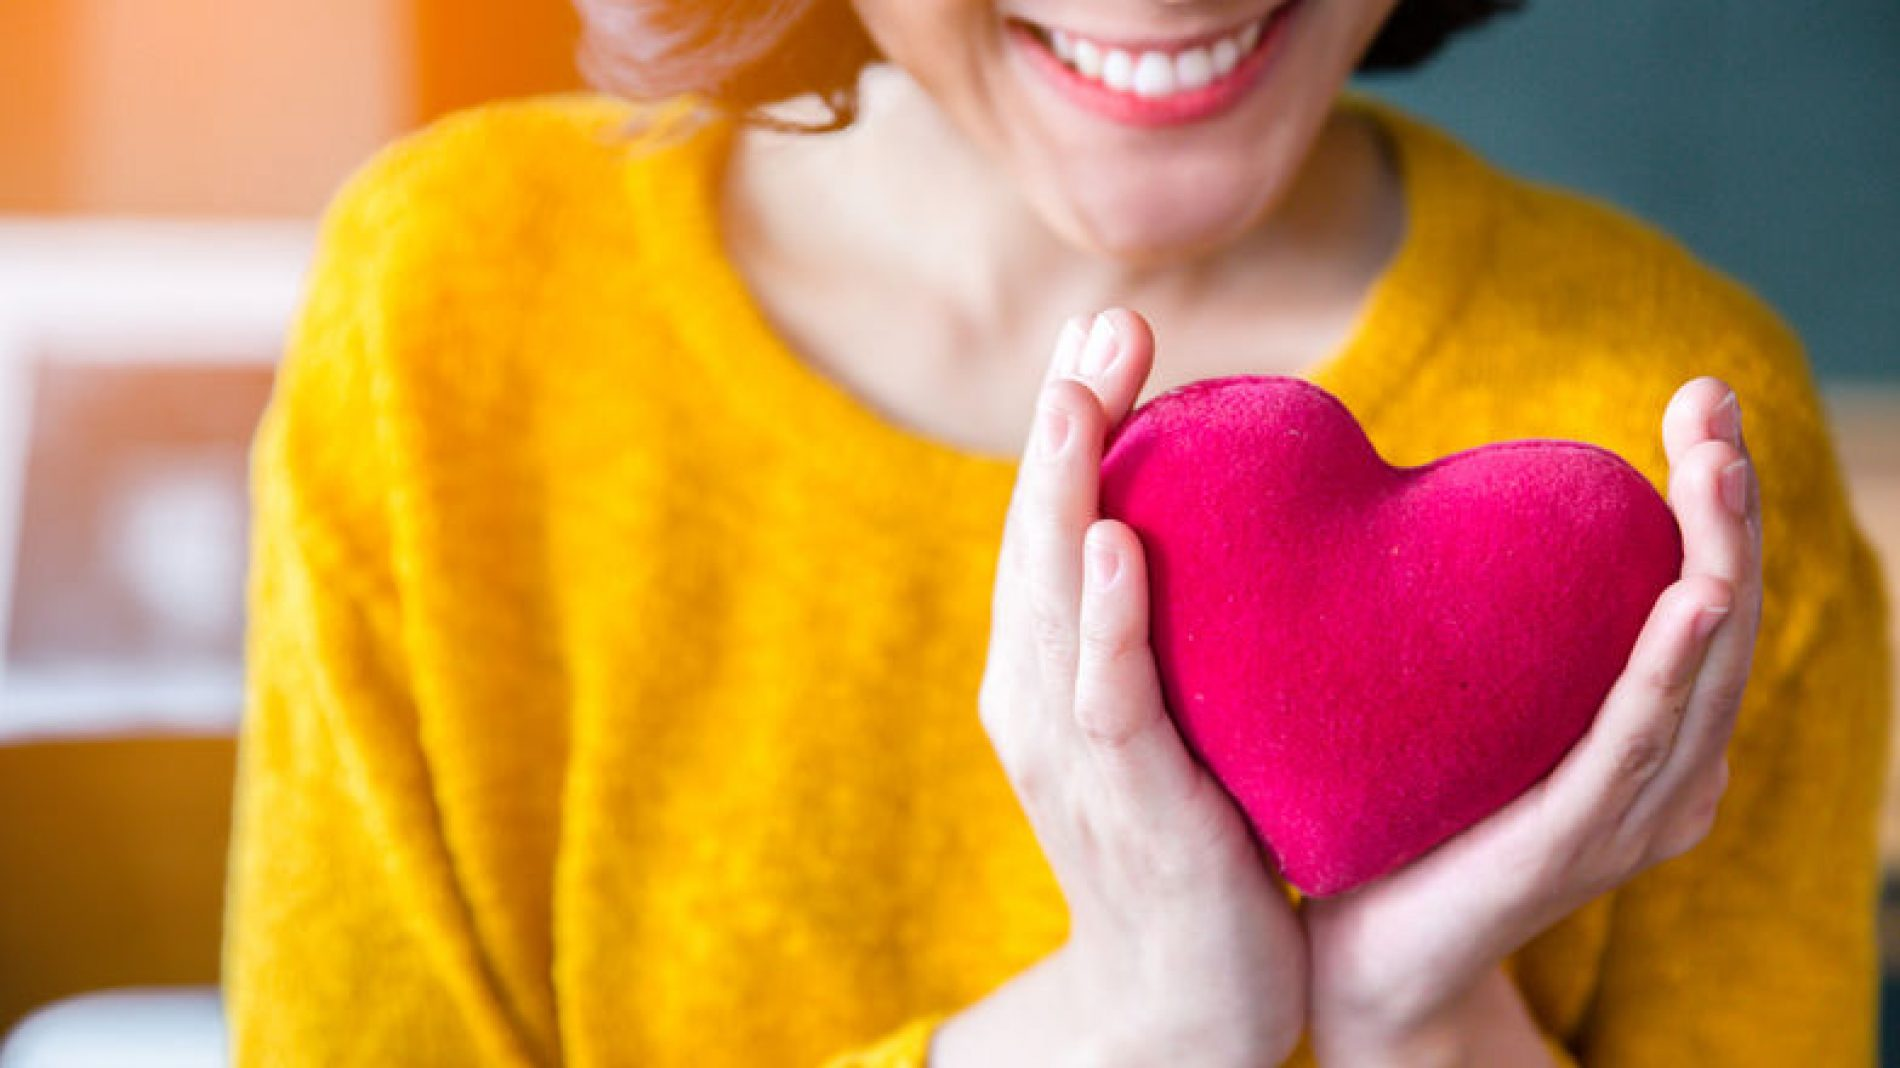 Woman-smiling-and-holding-toy-heart